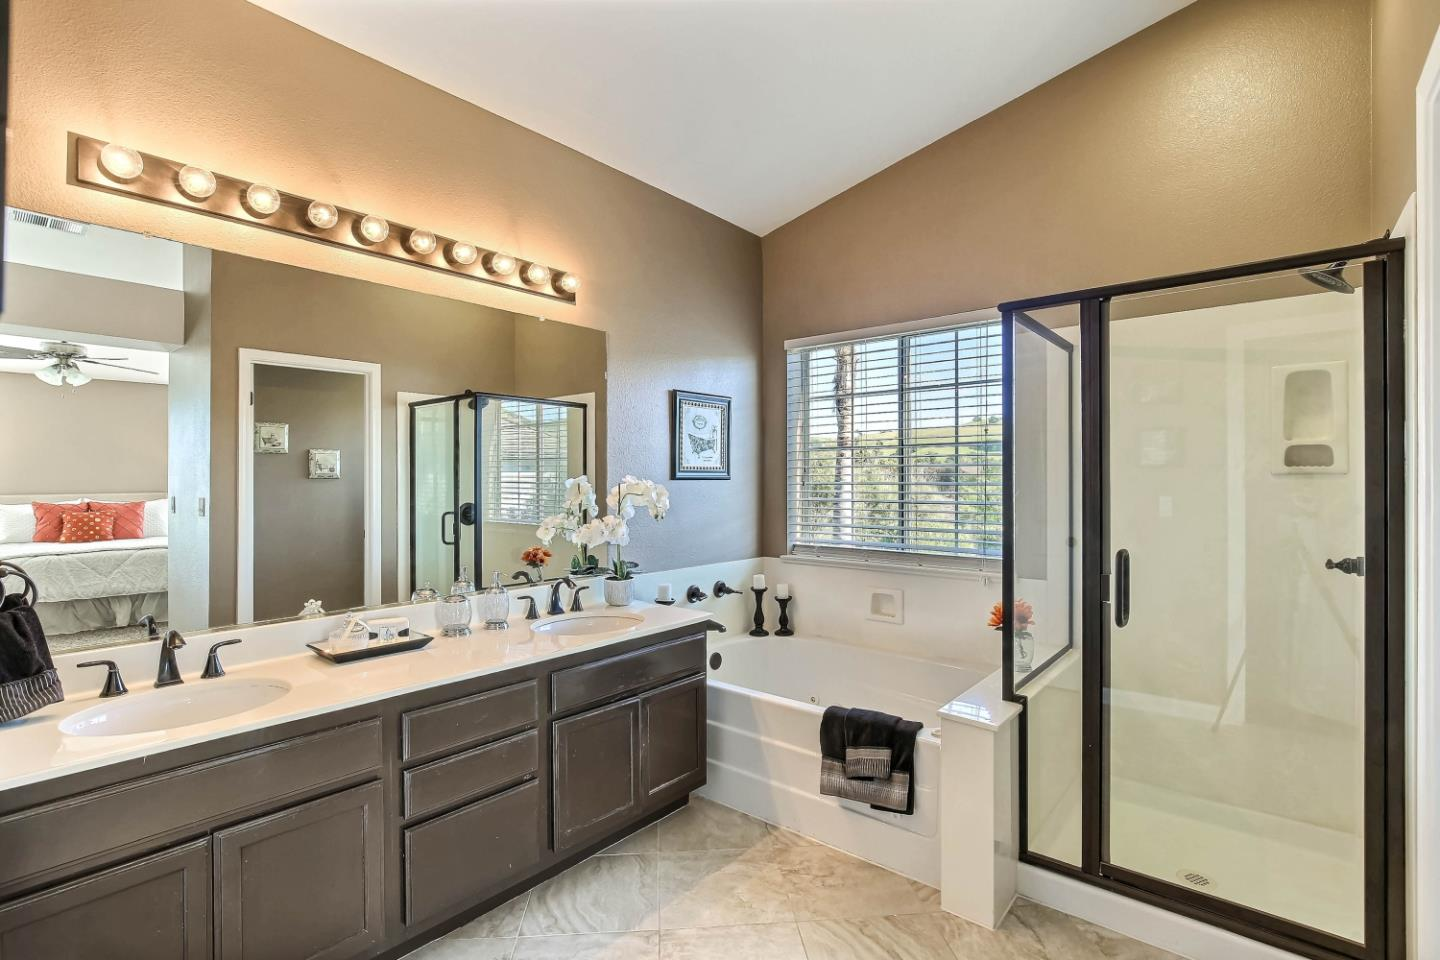 Additional photo for property listing at 6261 Skywalker Dr  SAN JOSE, CALIFORNIA 95135